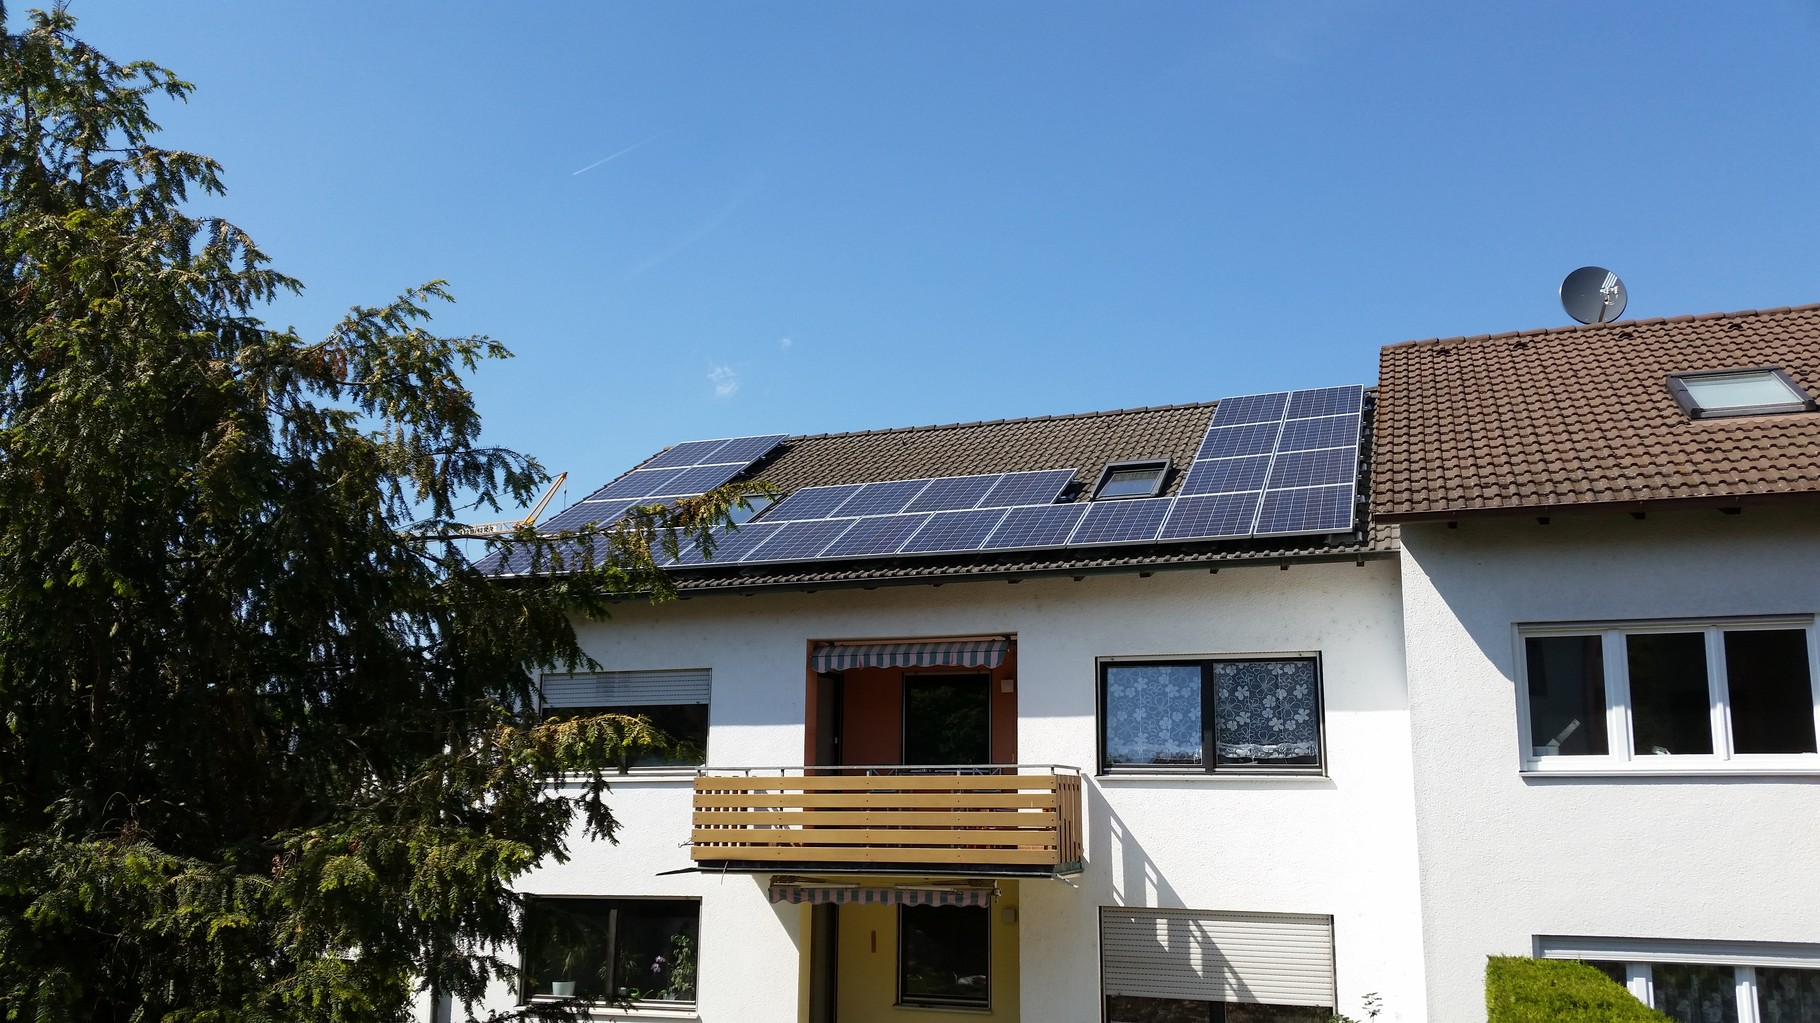 7 kWp Photovoltaikanlage 93077 Bad Abbach SHARP Modulen